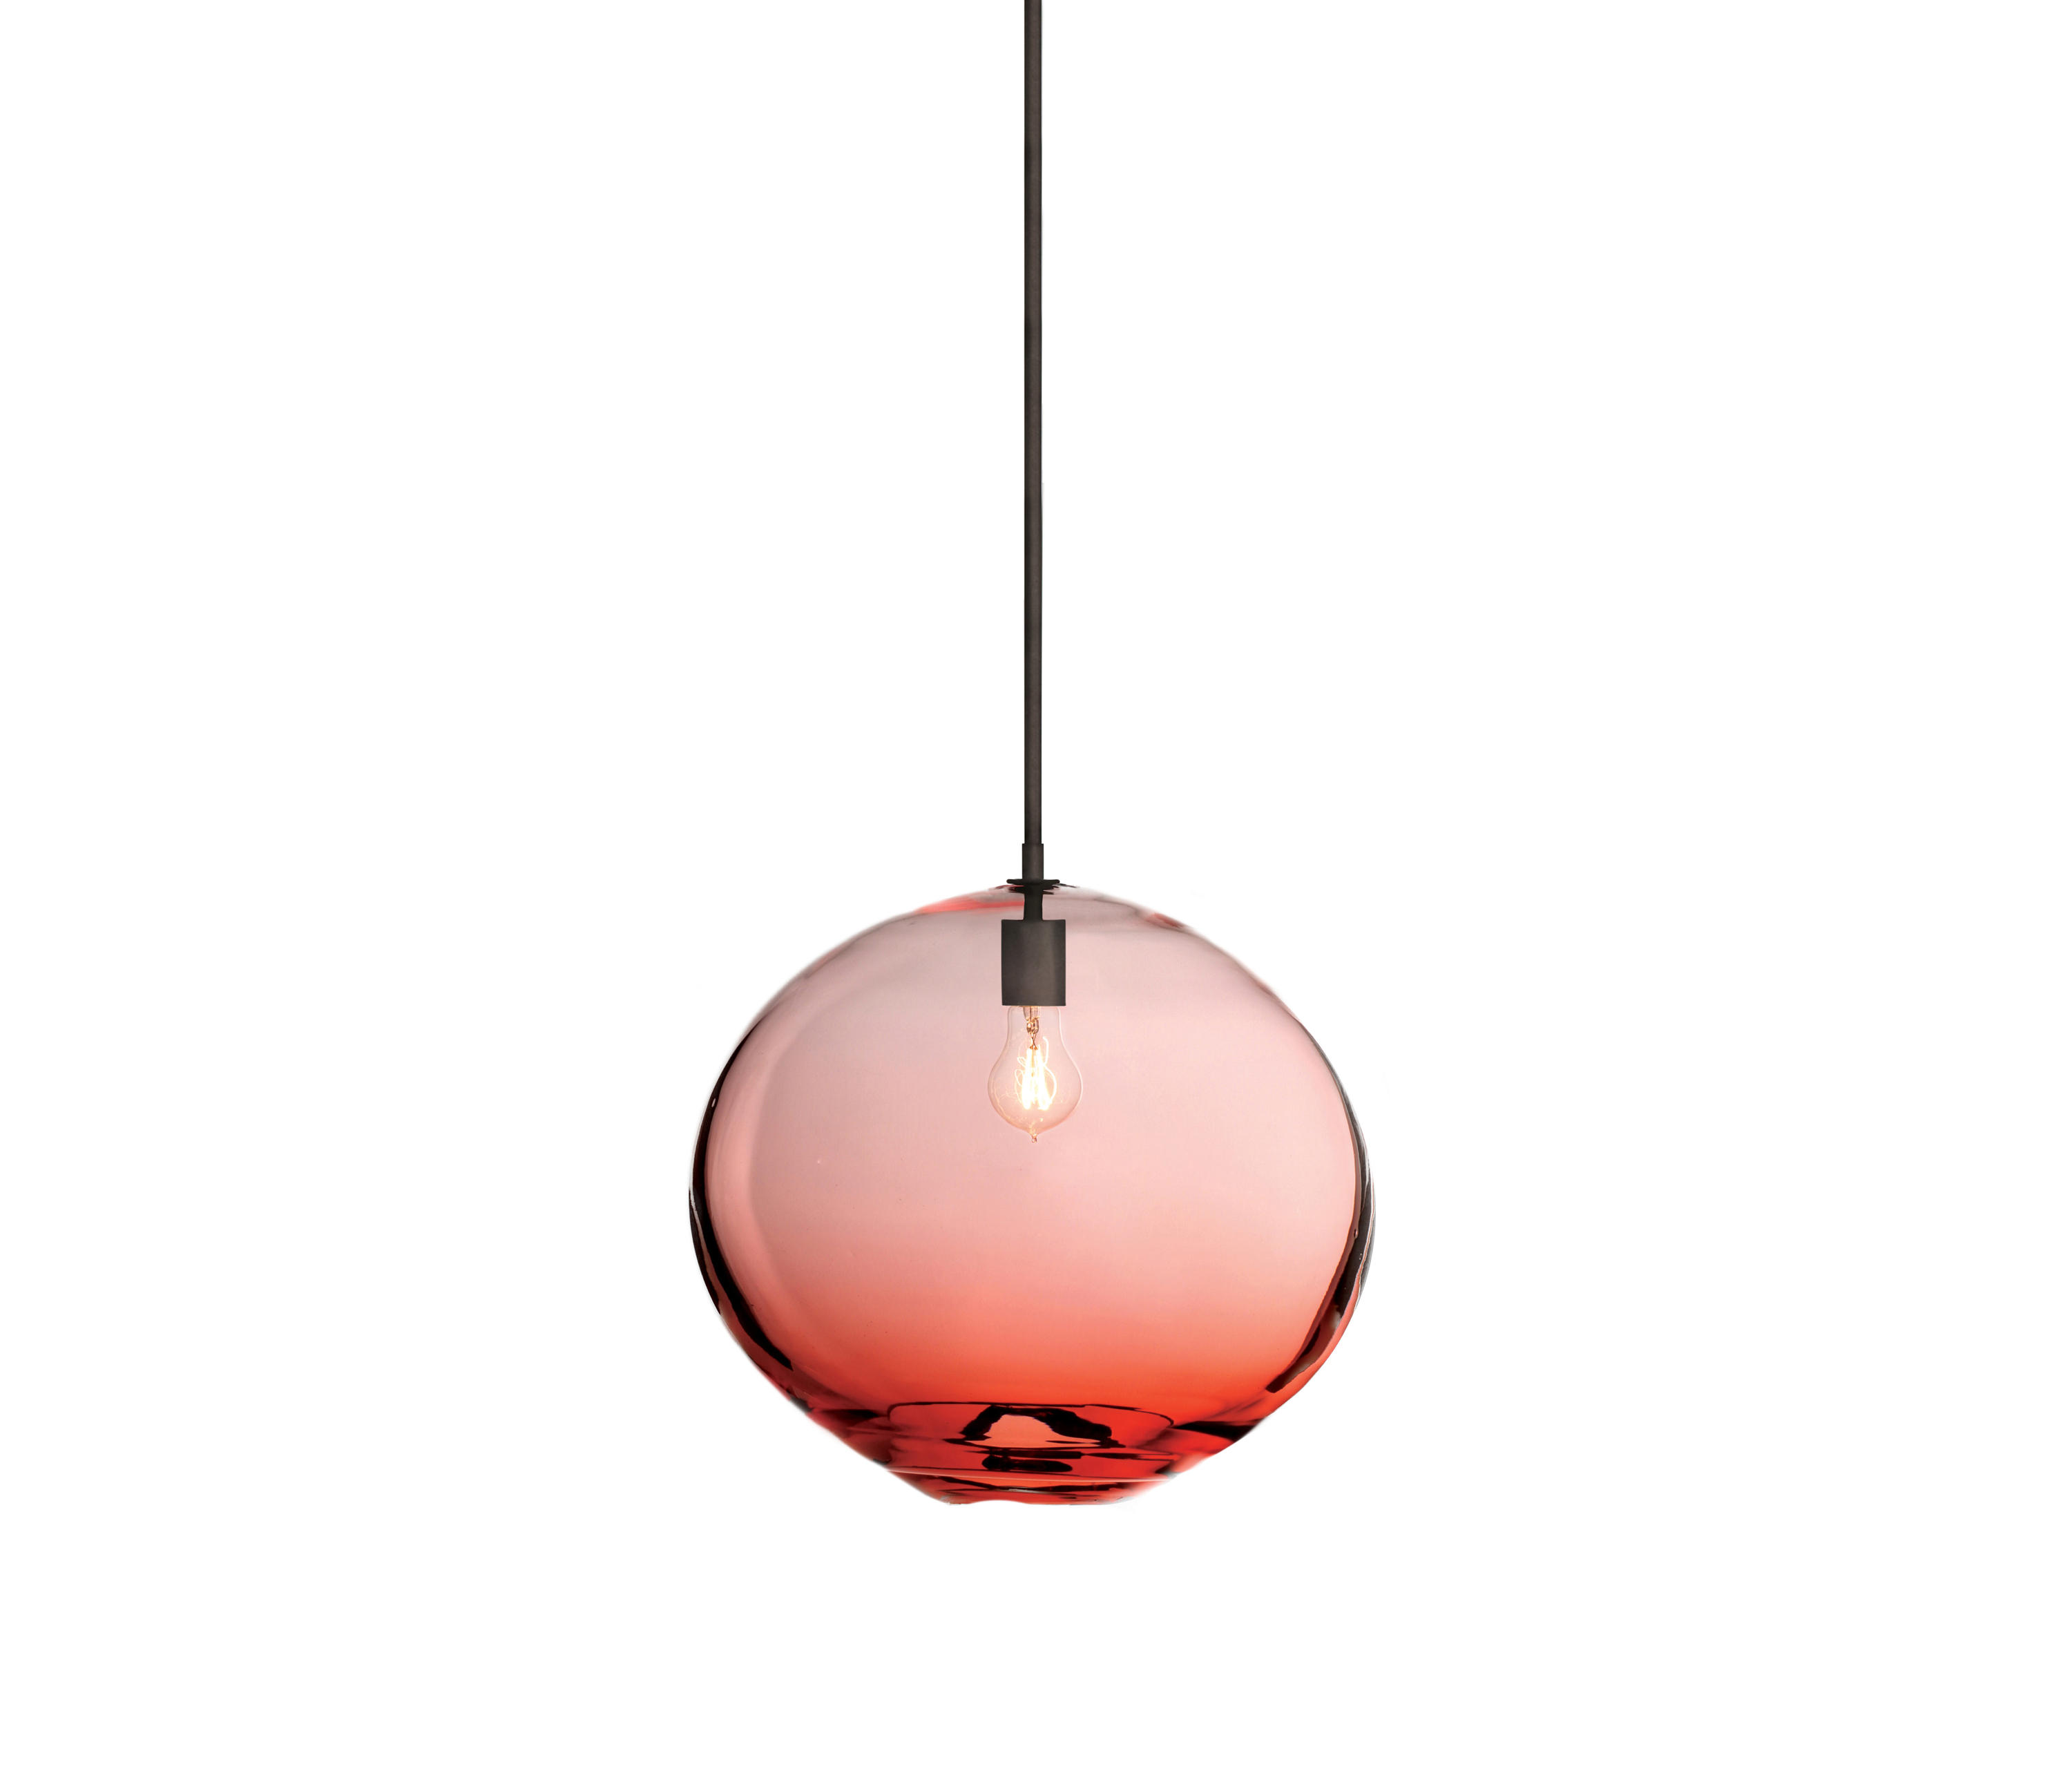 Trace Light Suspended Lights From Sklo: FLOAT PENDANT LIGHT DARK OXIDIZED RED